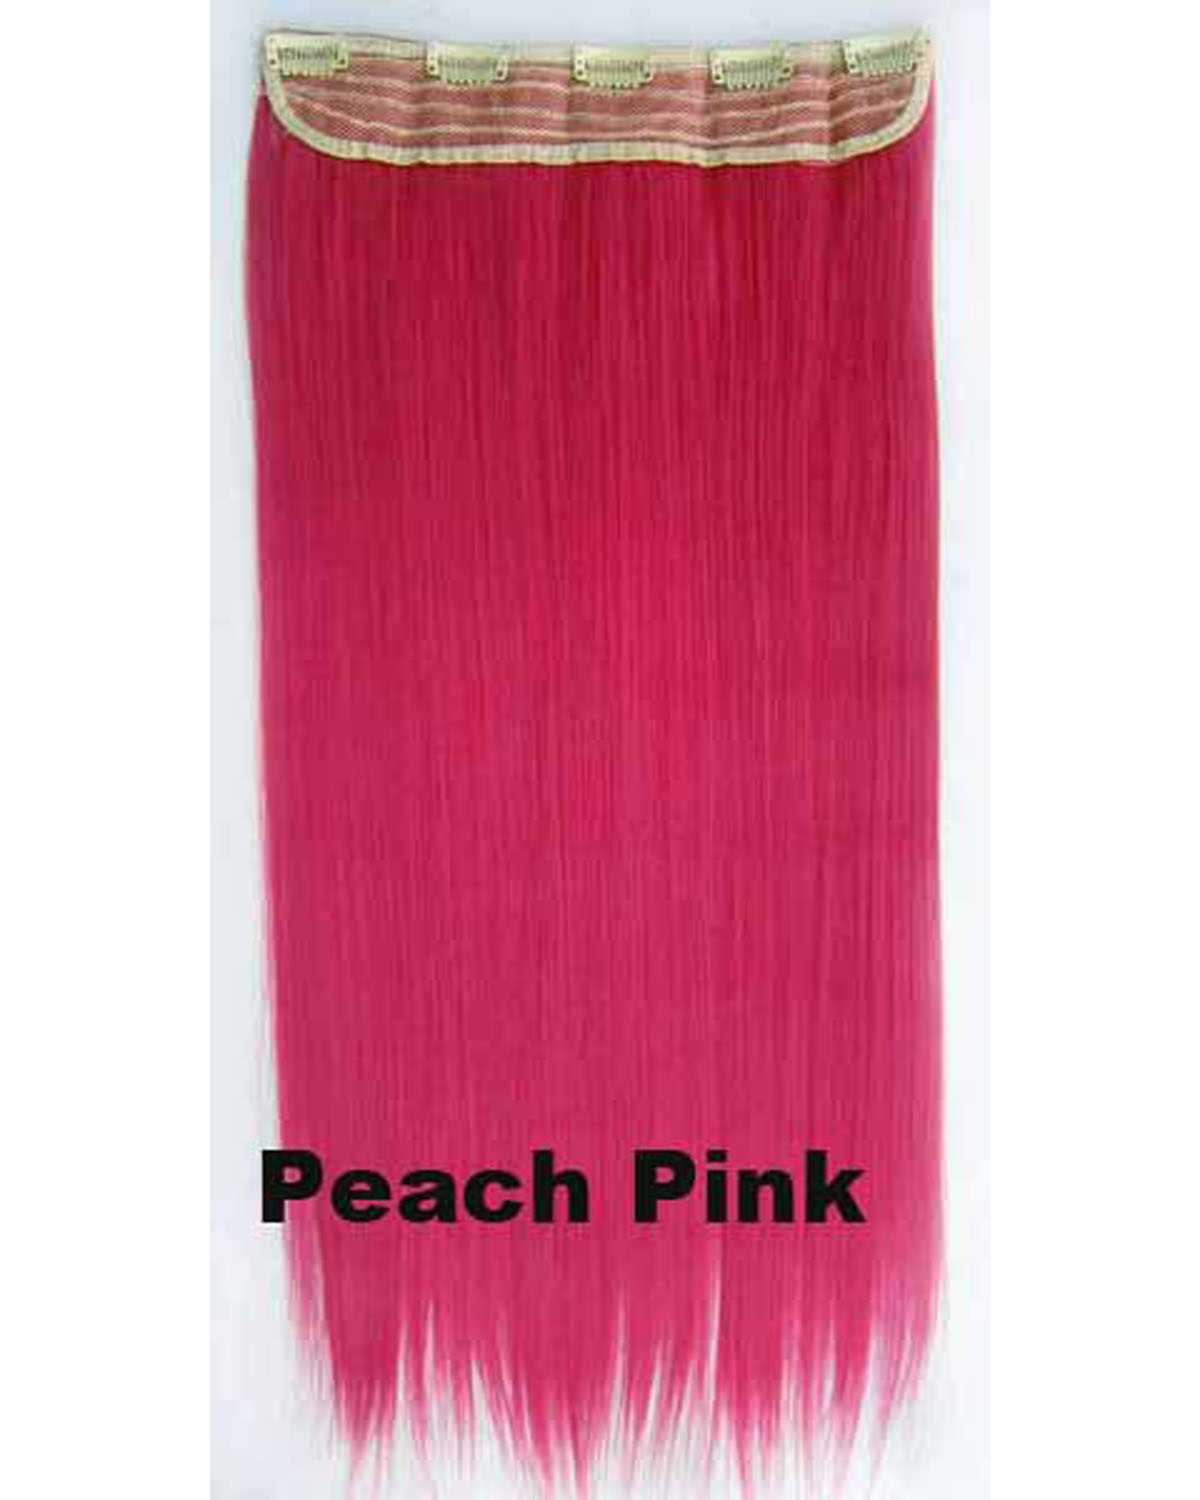 24 Inch Female Trendy Straight Long One Piece 5 Clips Clip in Synthetic Hair Extension Peach Pink